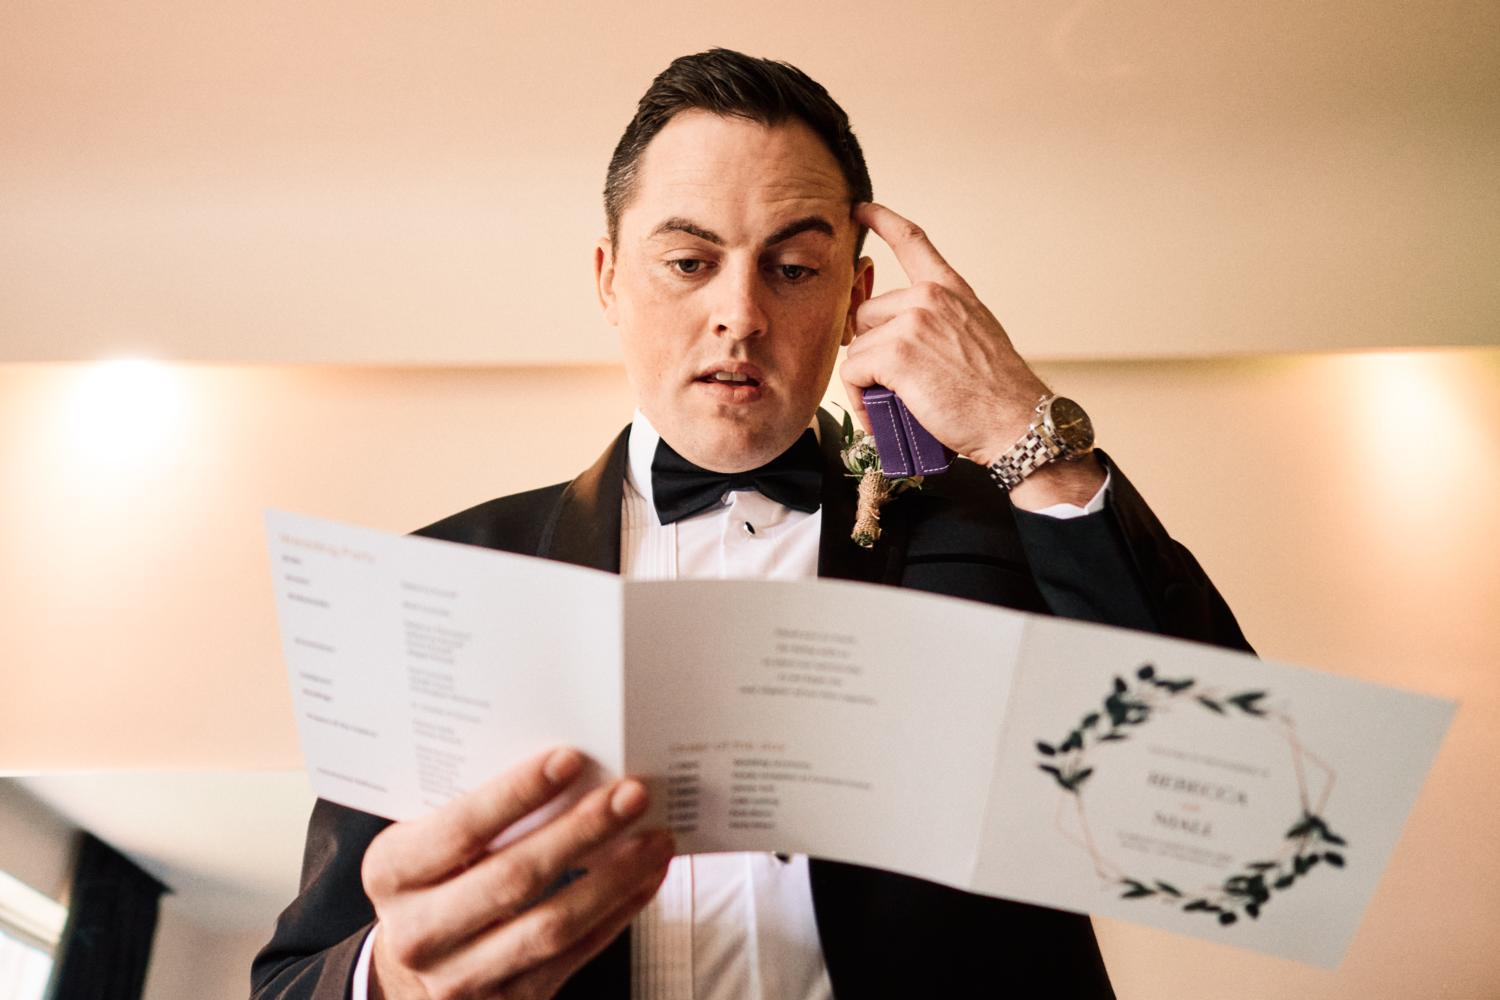 An Irish groom reads wedding service in a tuxedo